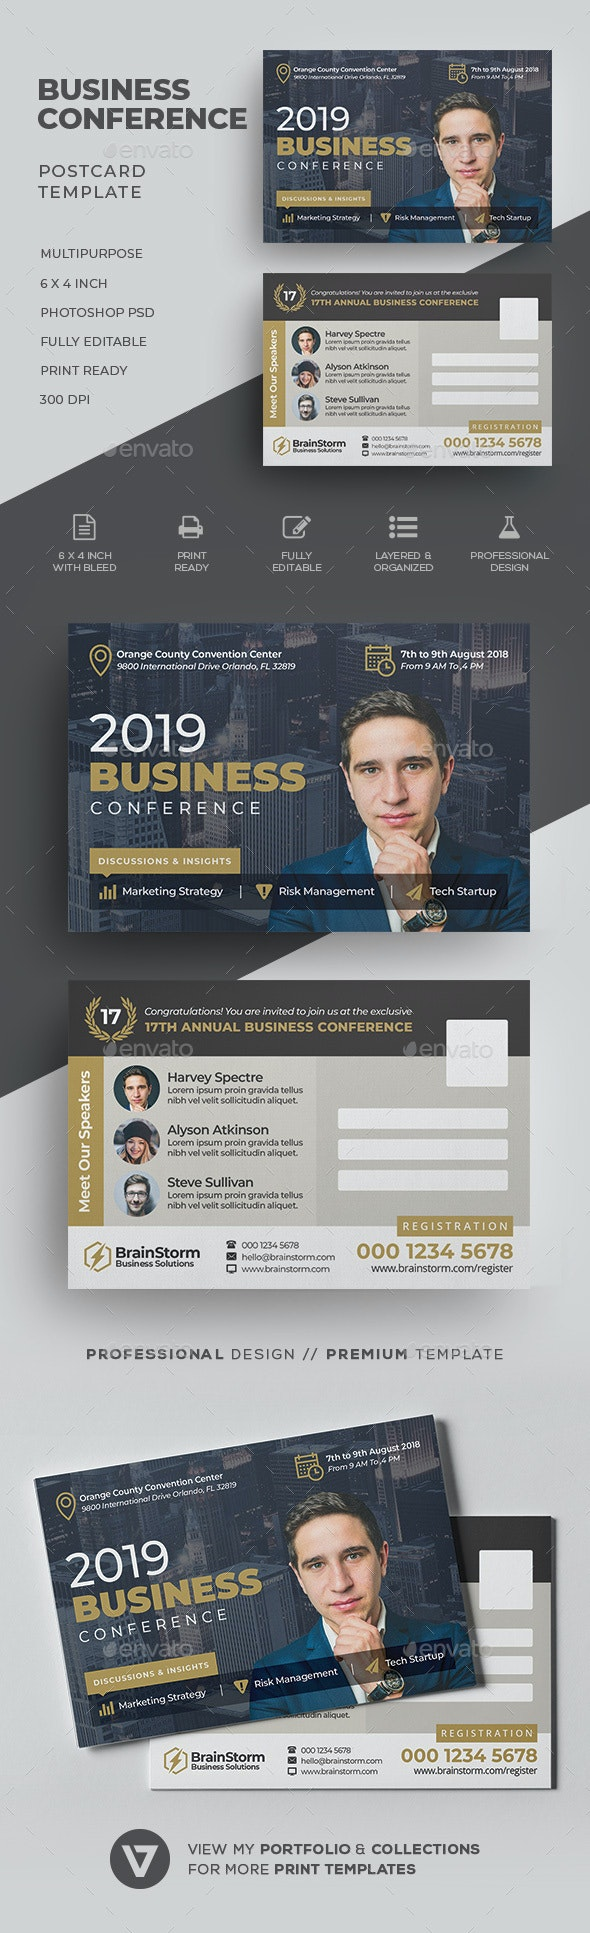 Conference Postcard Template - Cards & Invites Print Templates